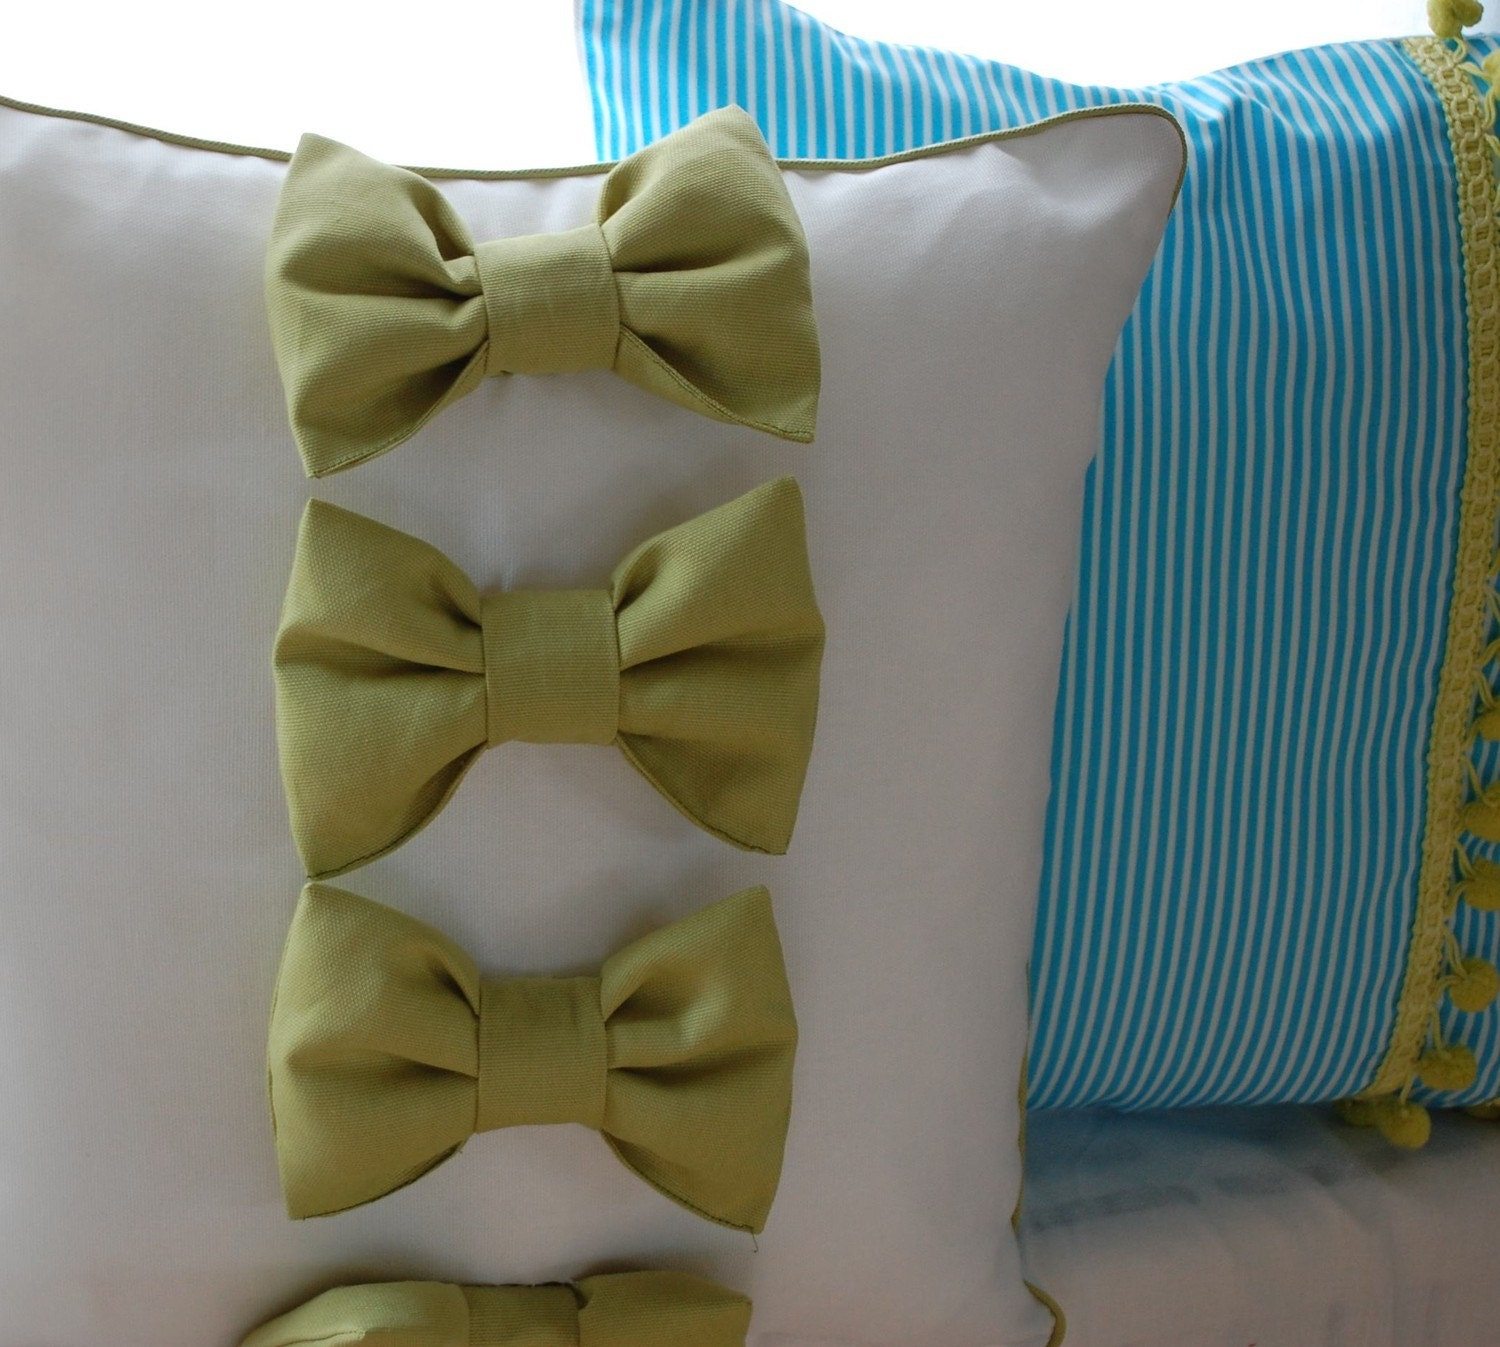 Lots of Bows Pillow cover